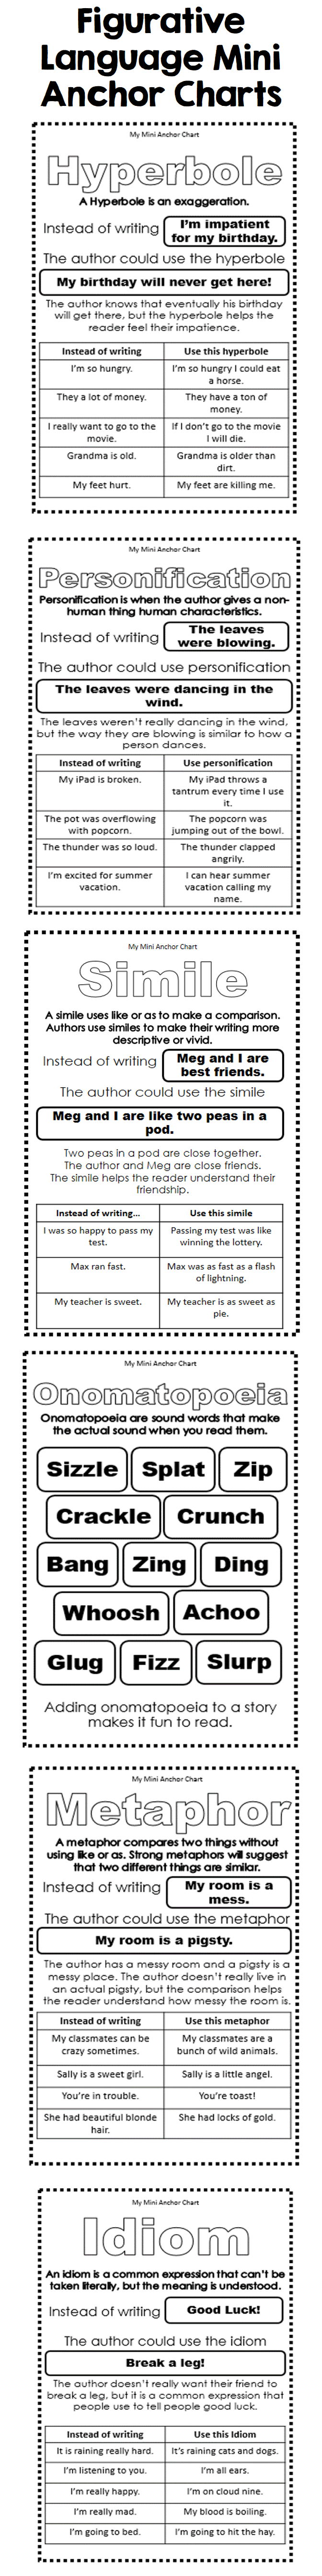 Pmr English Essay These Mini Anchor Charts Are A Great Addition To An Interactive Reading Or  Writing Notebook Product Includes Mini Anchor Charts For Similes  Metaphors  Essay Of Health also Essay Writing High School Figurative Language Posters  Lang  Pinterest  Figurative Language  English Essay Topics For College Students